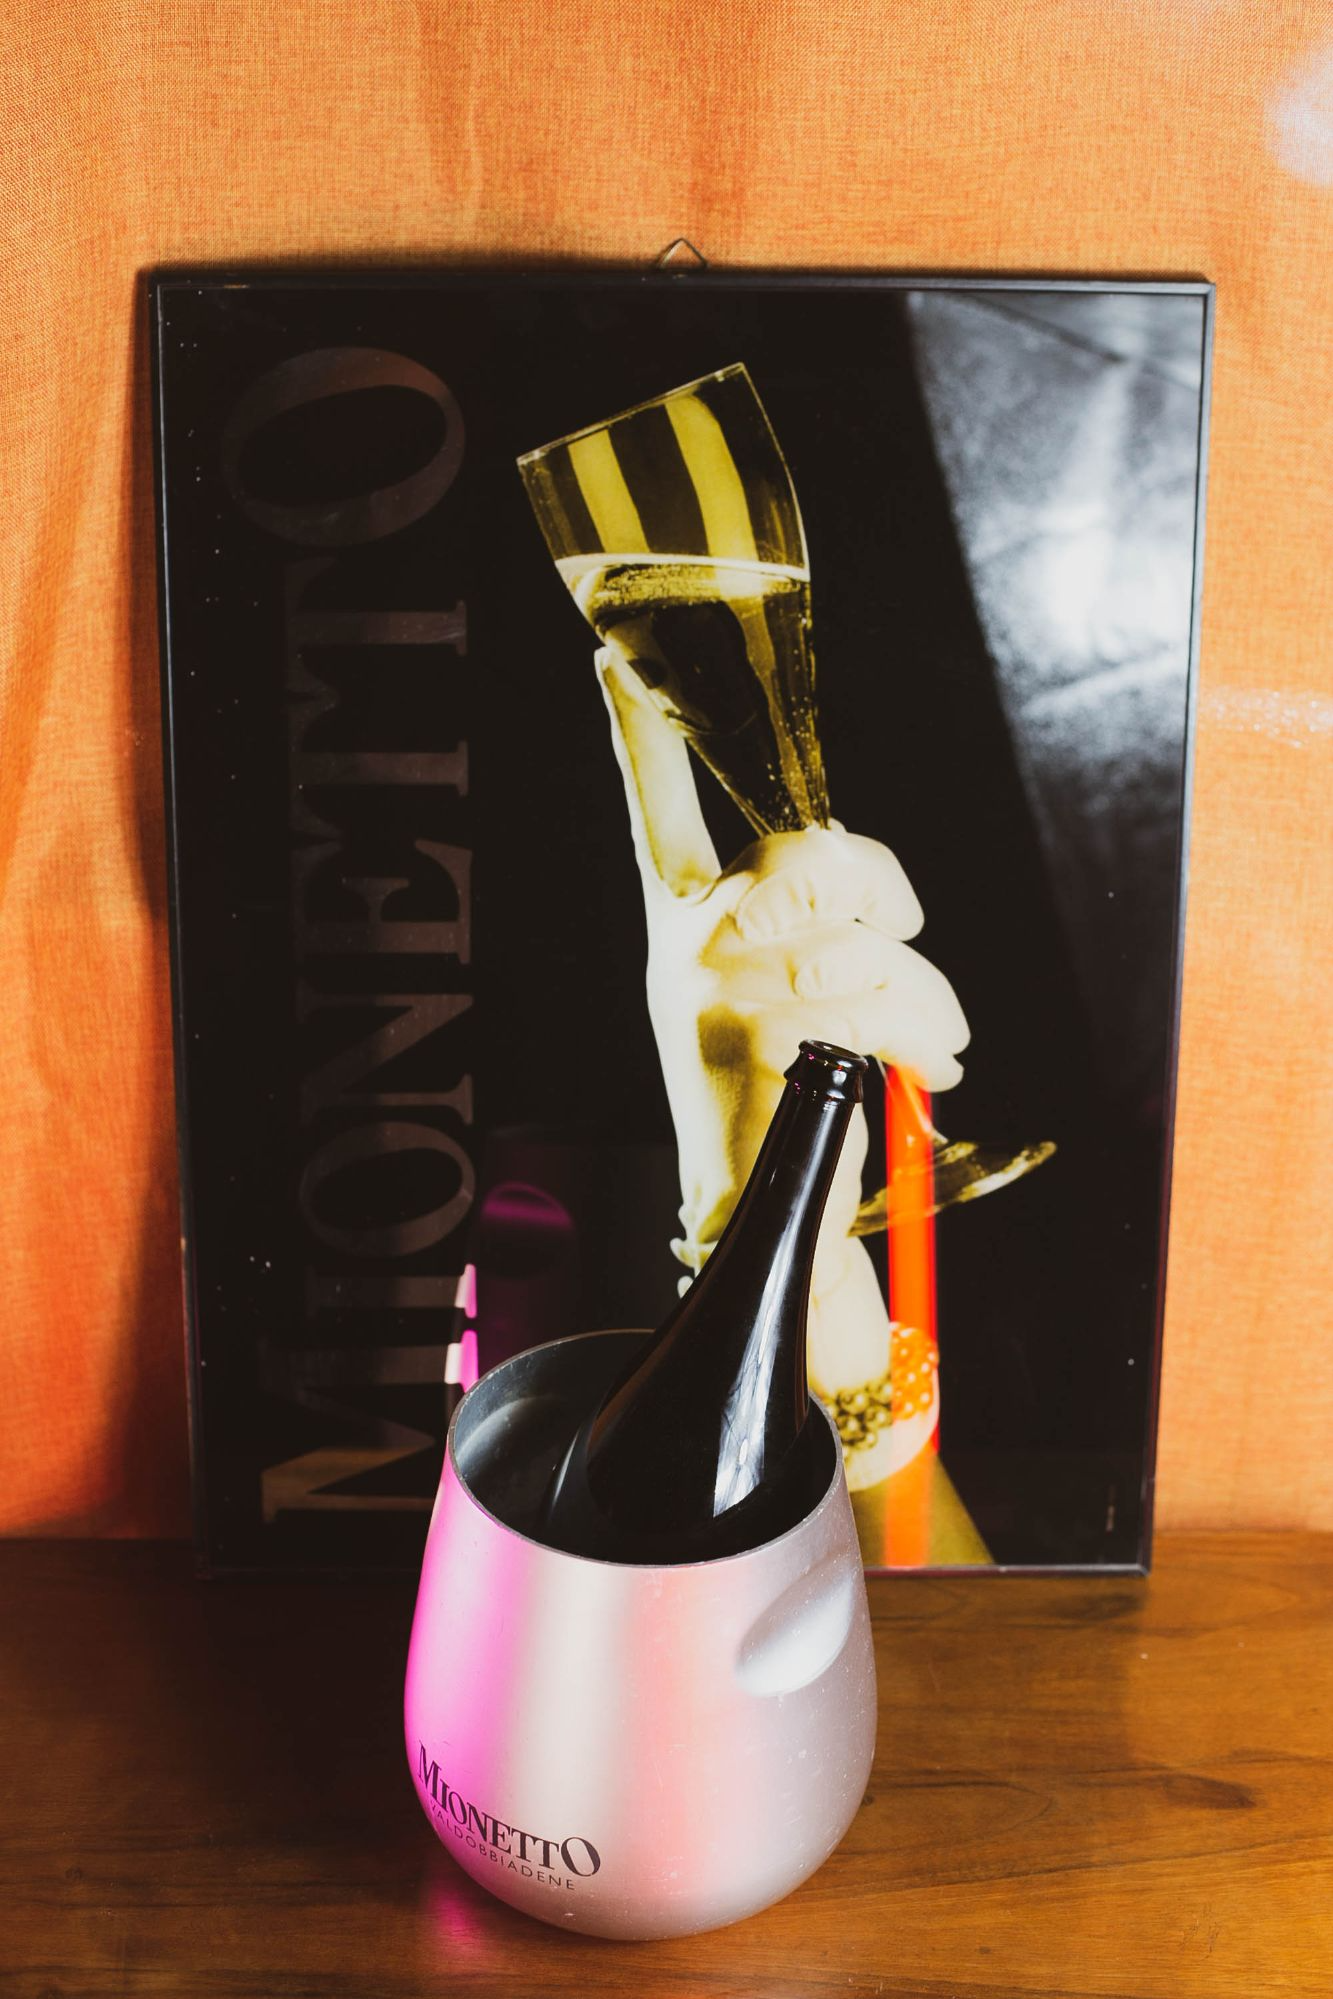 mionetto-fans-kit